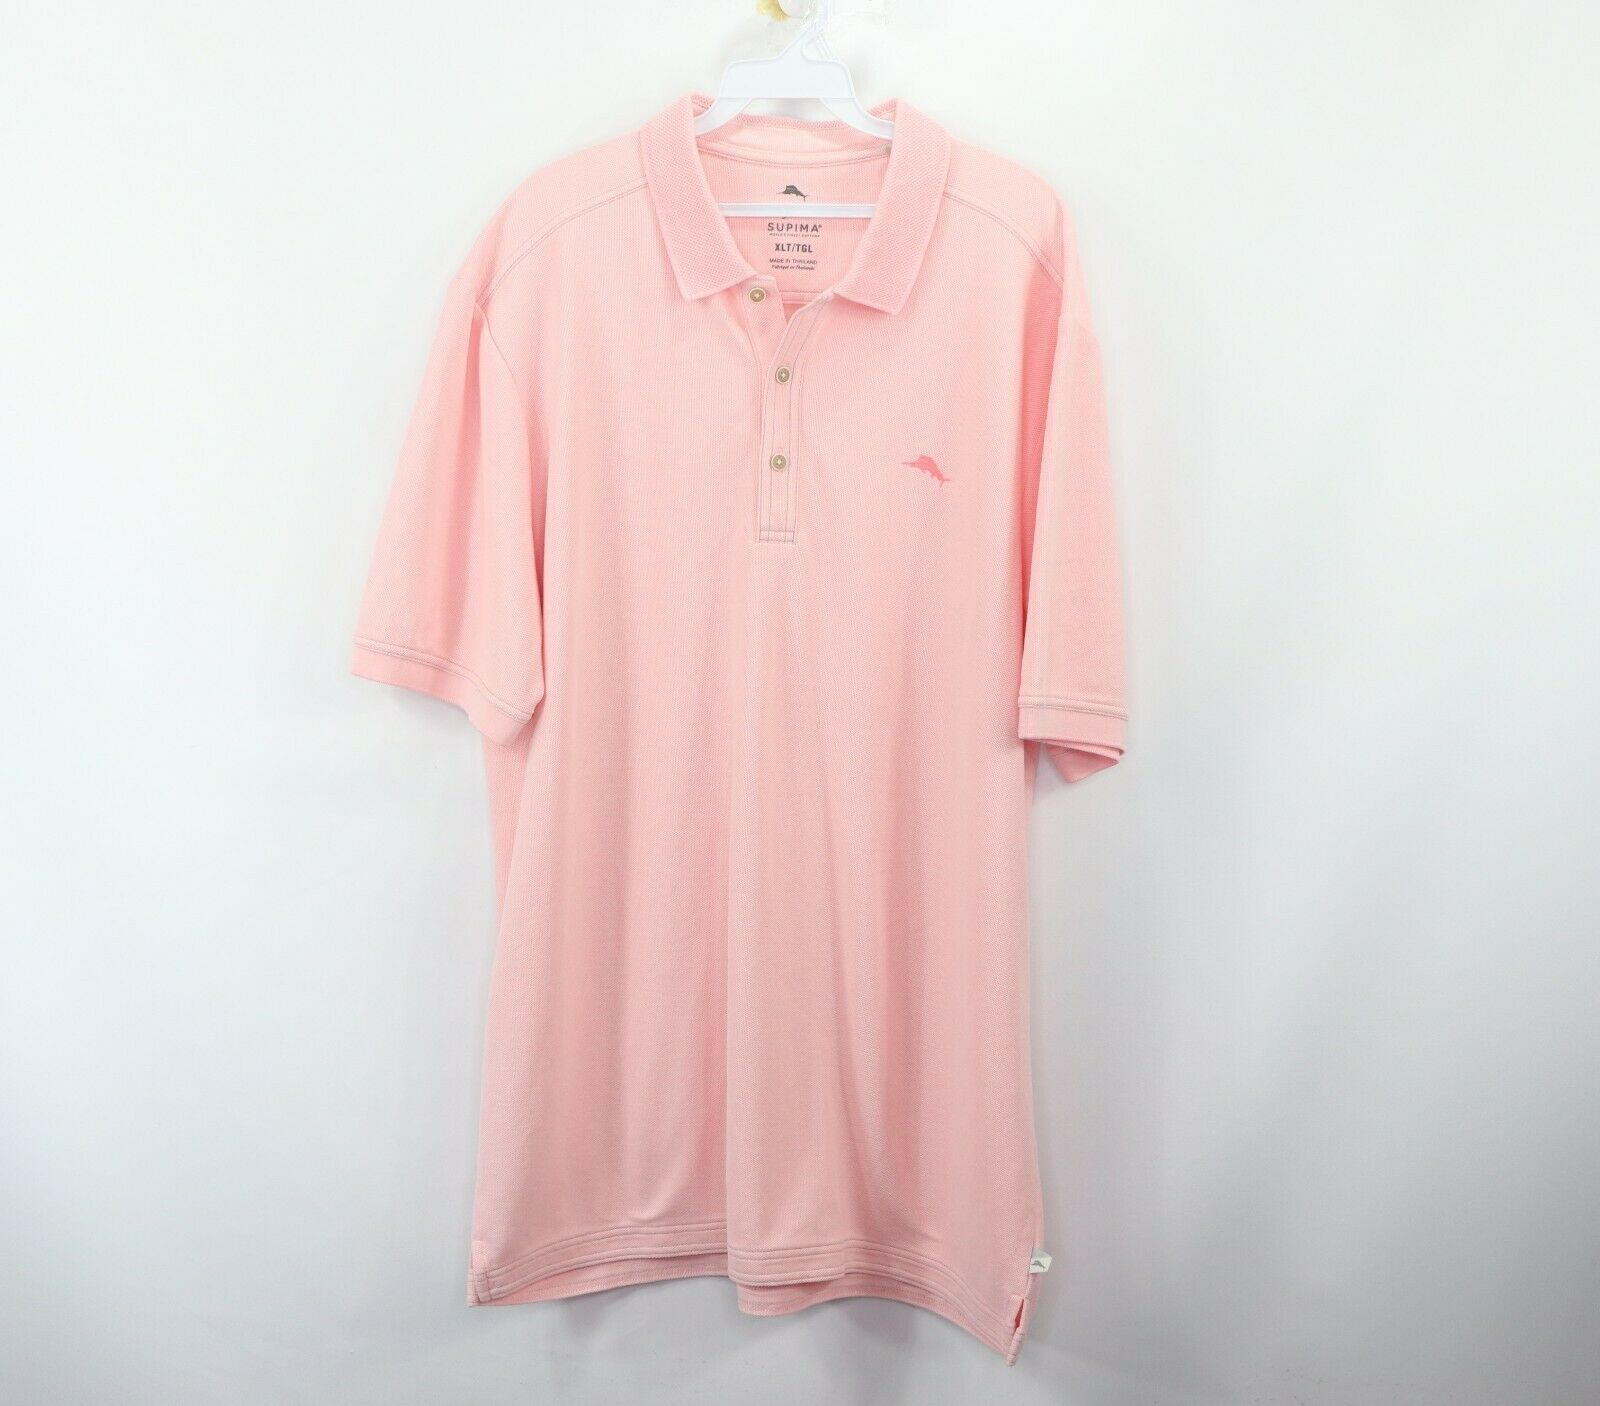 da14667d Tommy Bahama Mens XL Tall XLT Supima Cotton Short Sleeve Golf Polo Shirt  Pink - $34.60